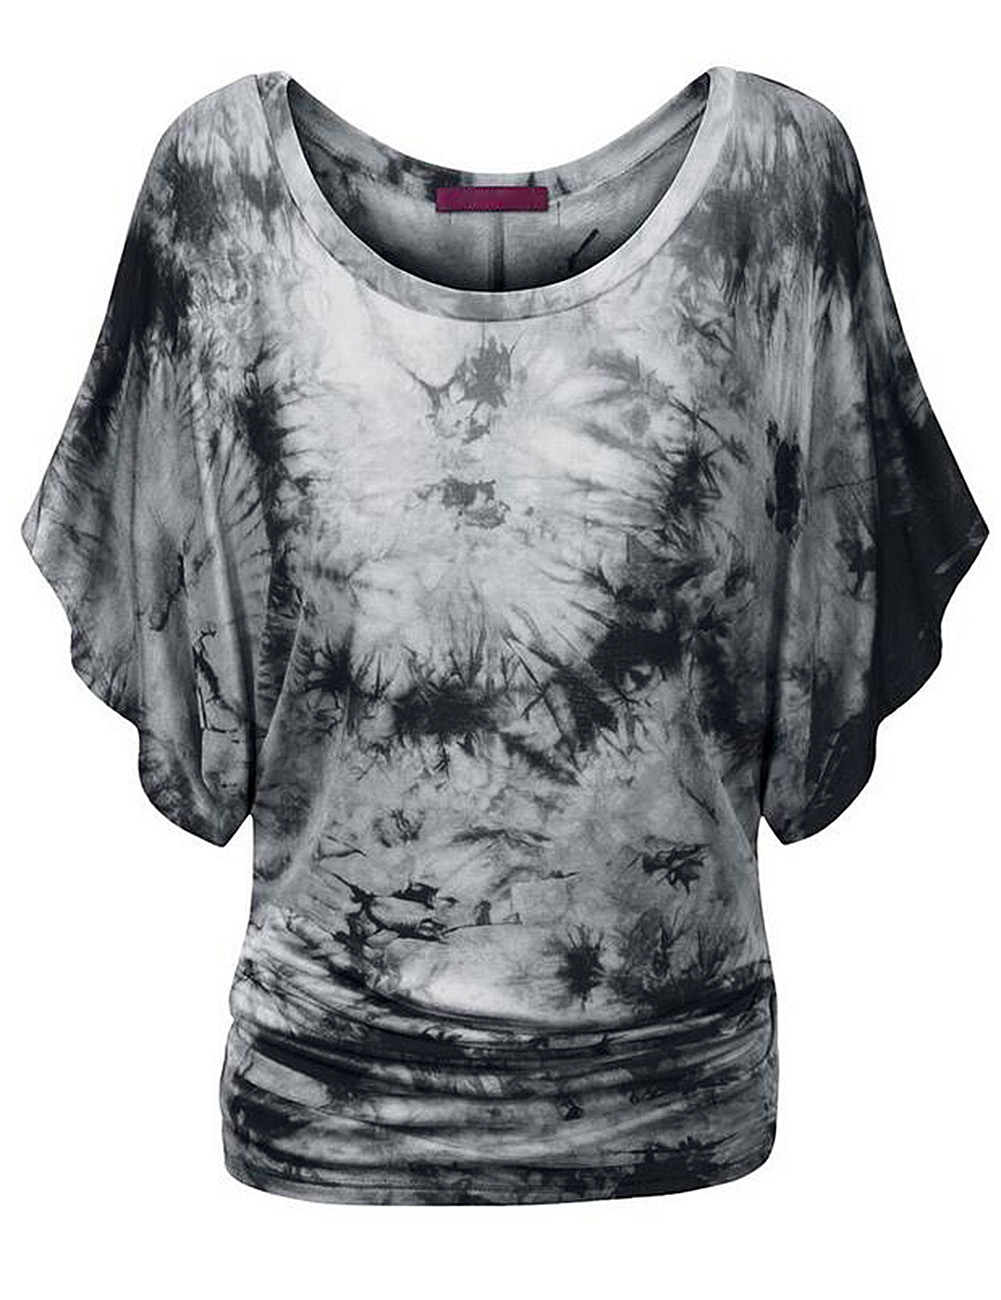 Women Bat Short Sleeve Dolman Drape with Side Shirring Loose Fit T-Shirt Grey White S